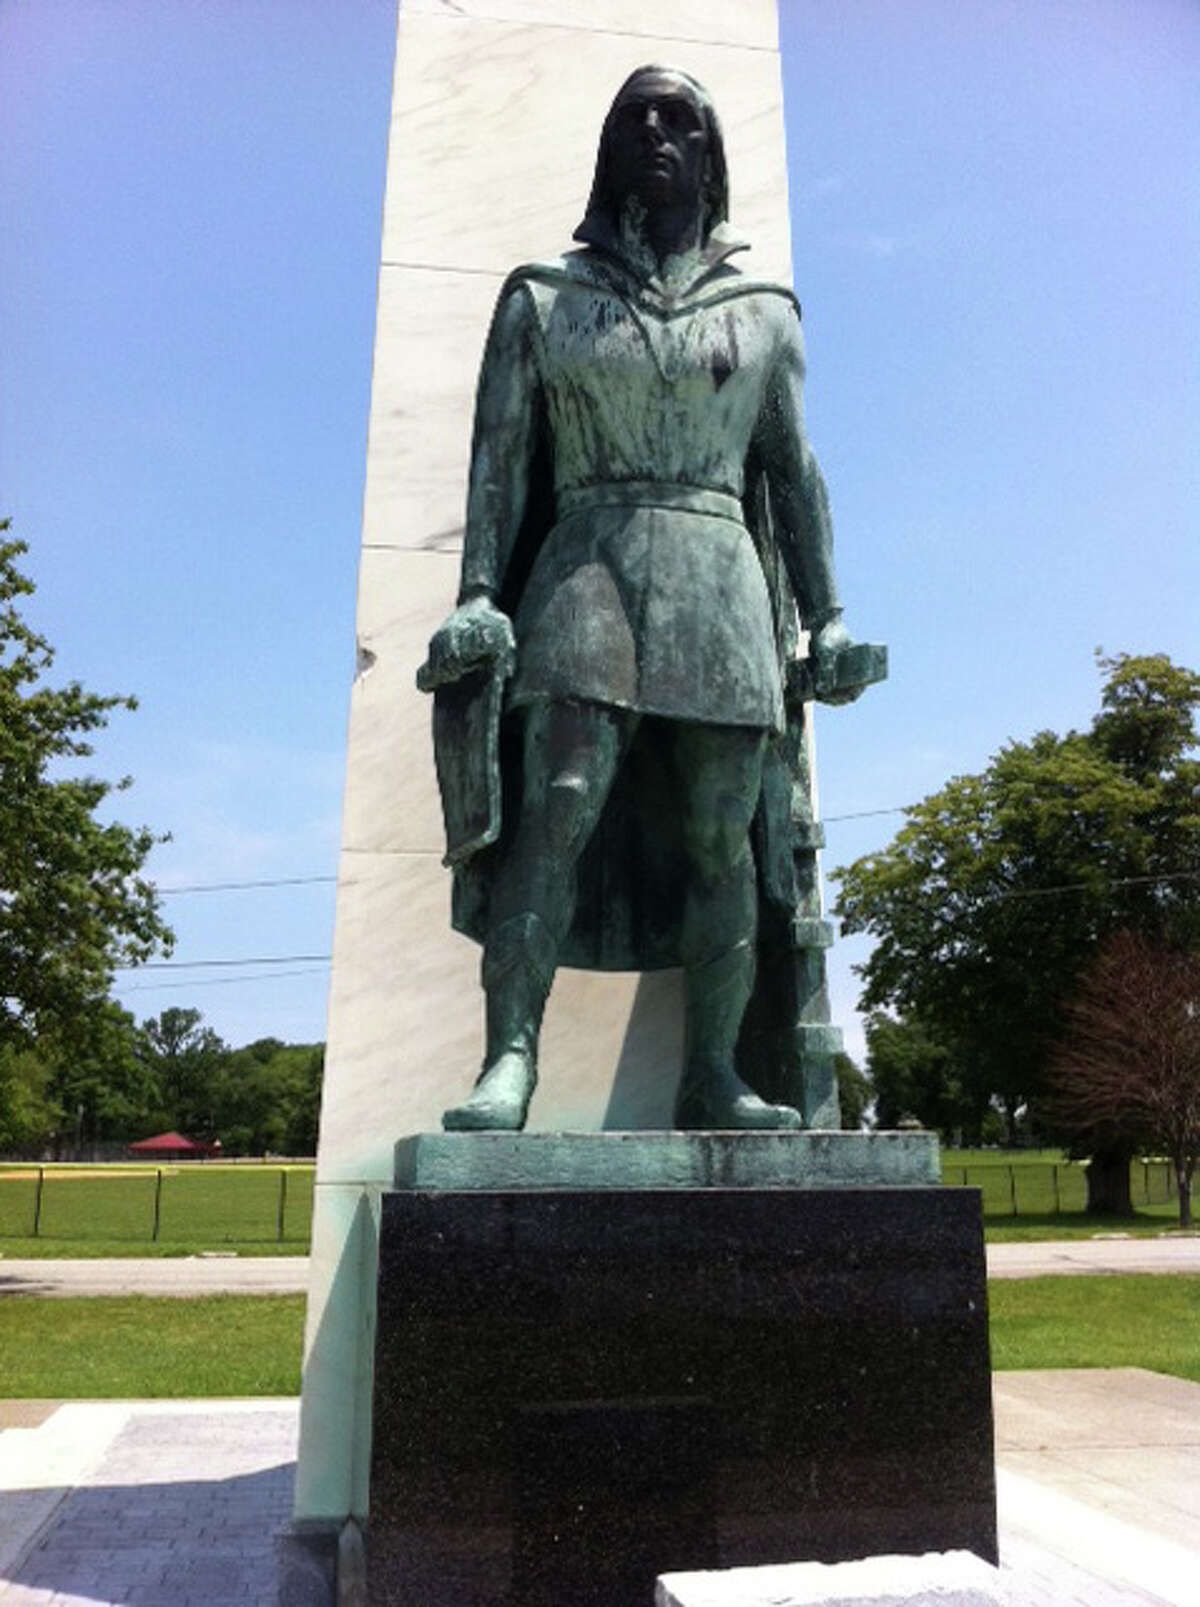 City officials confirmed Monday that a statue of Christopher Columbus in Bridgeport's Seaside Park has been vandalized with black paint on the sculpture's face. Elaine Ficarra, aide to Mayor Bill Finch said that she and a city parks official went down to look at the Columbus statue after hearing that it might have been defaced recently. Although a restoration of the statue is planned in conjunction with the 520th anniversary of the explorer's landing in Central America in October, the paint is not part of that project.